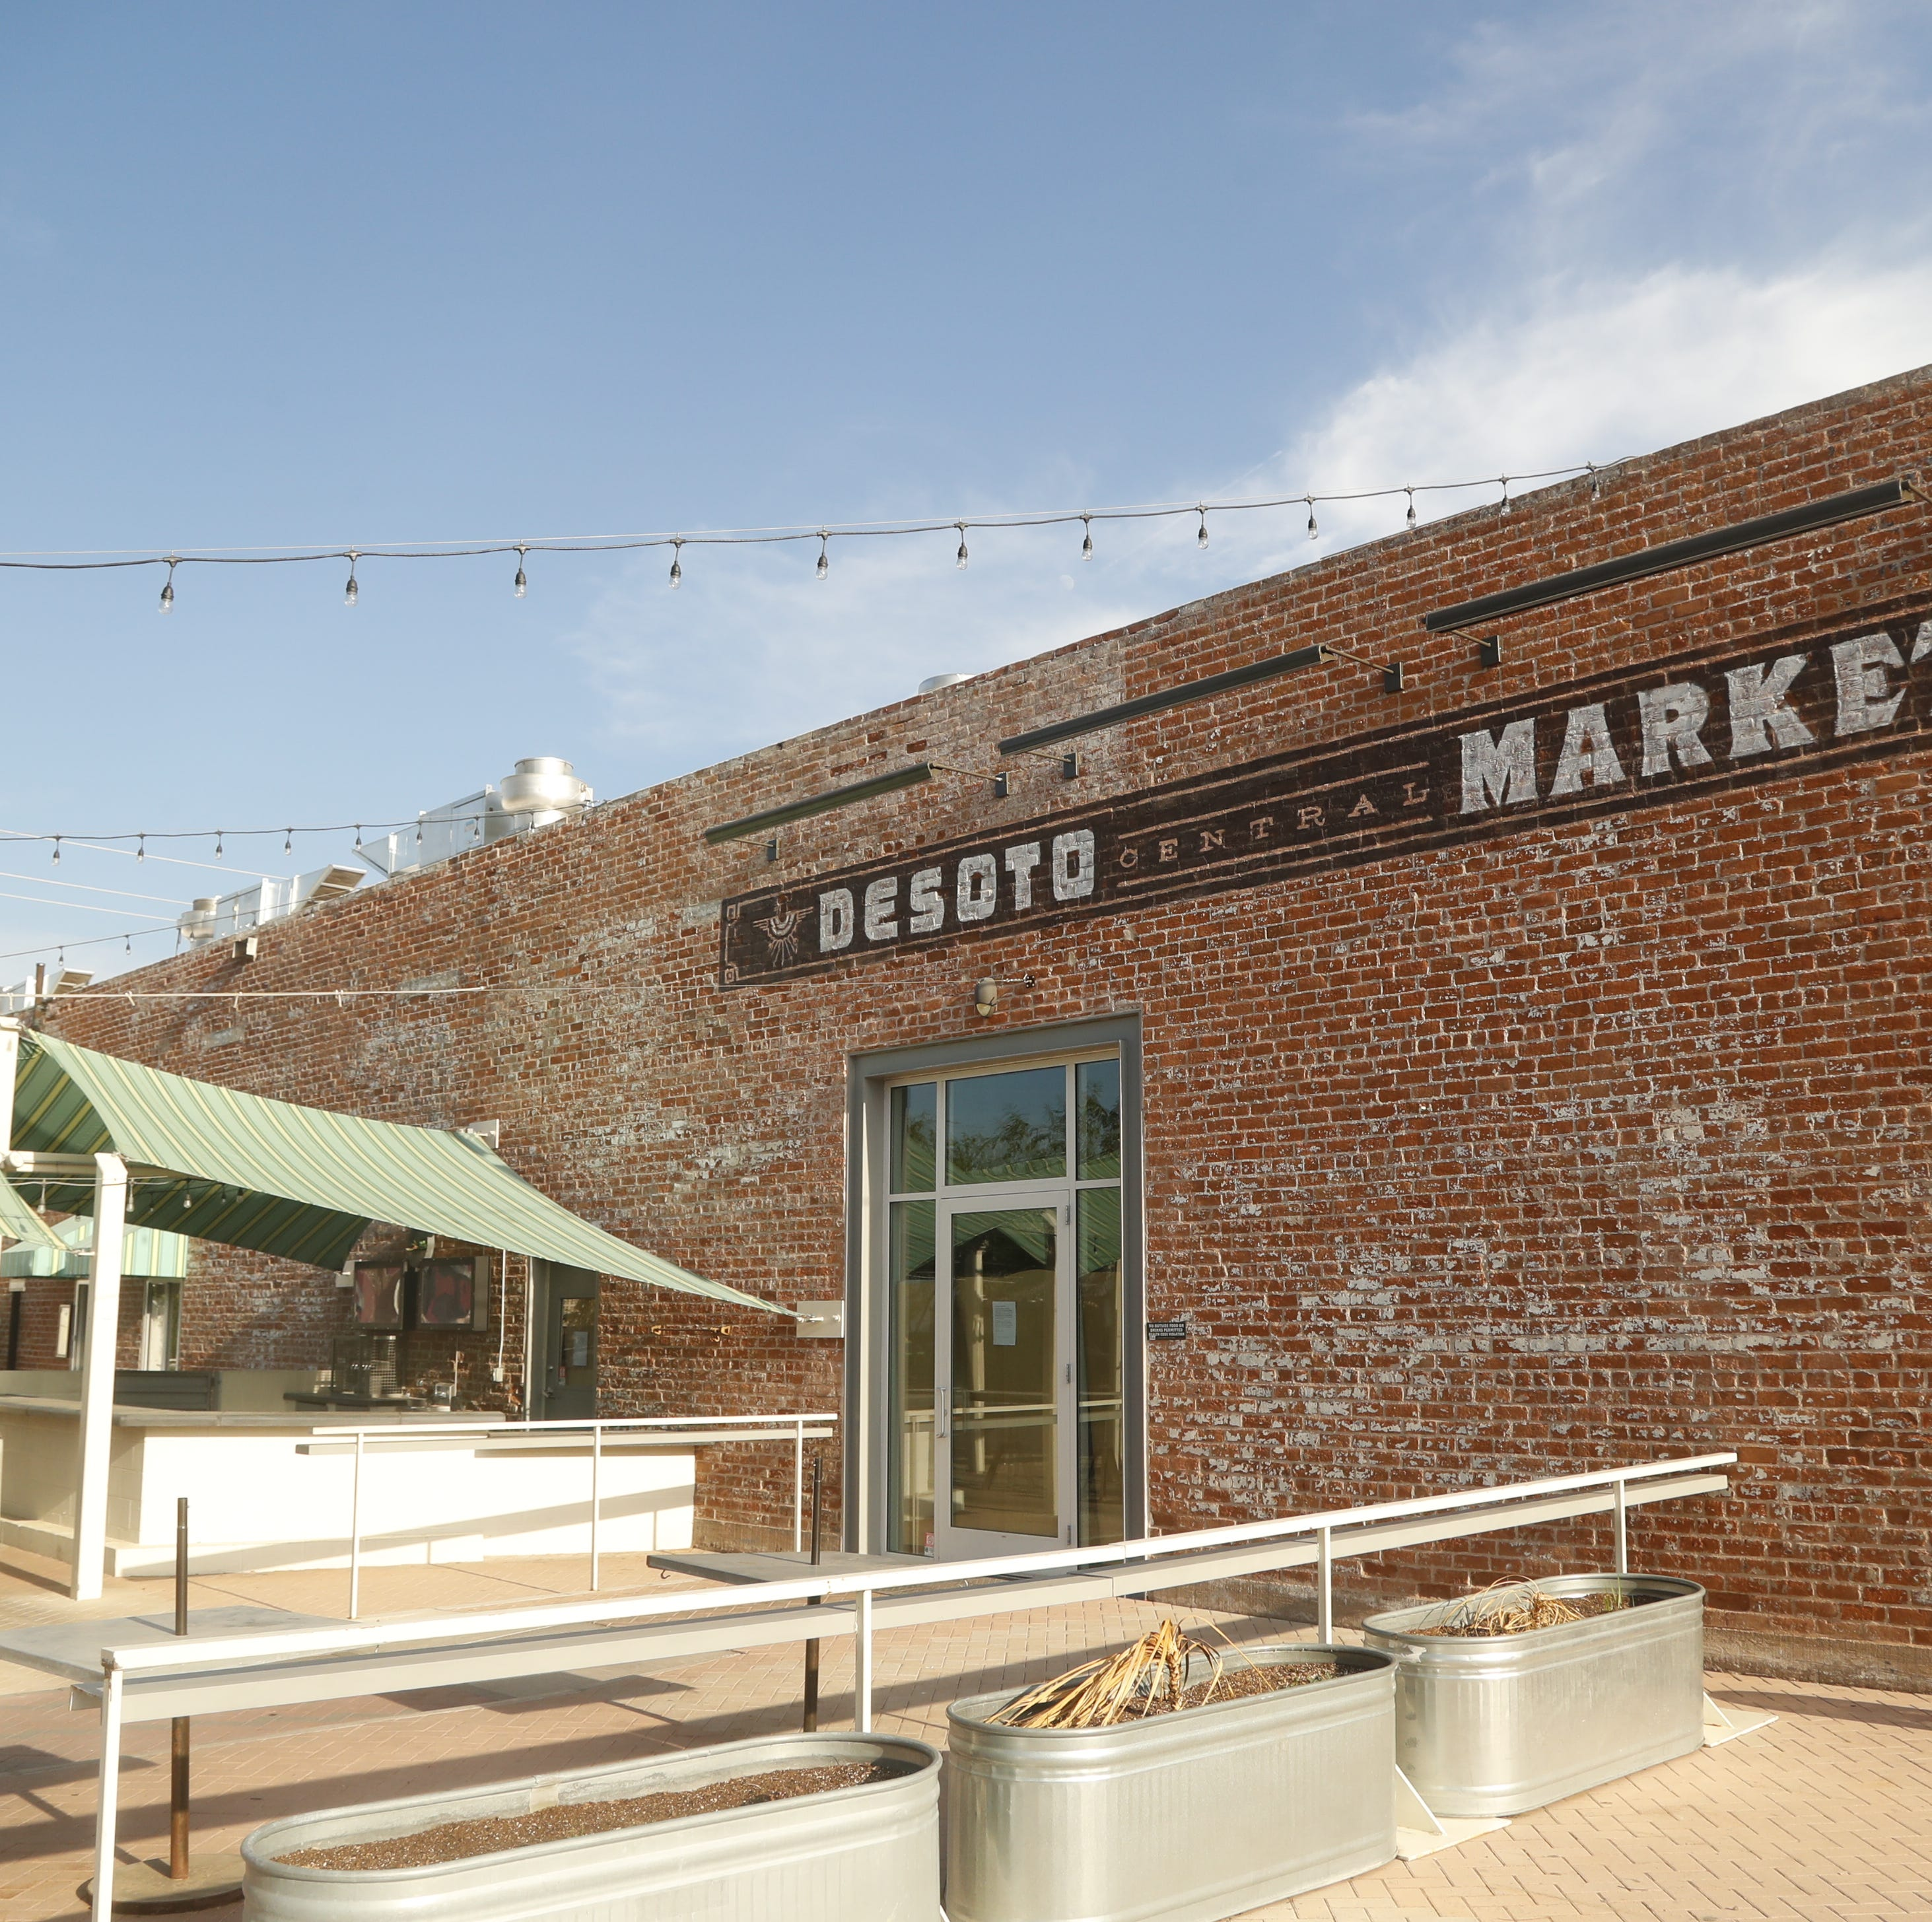 DeSoto Central Market on Roosevelt Row has closed